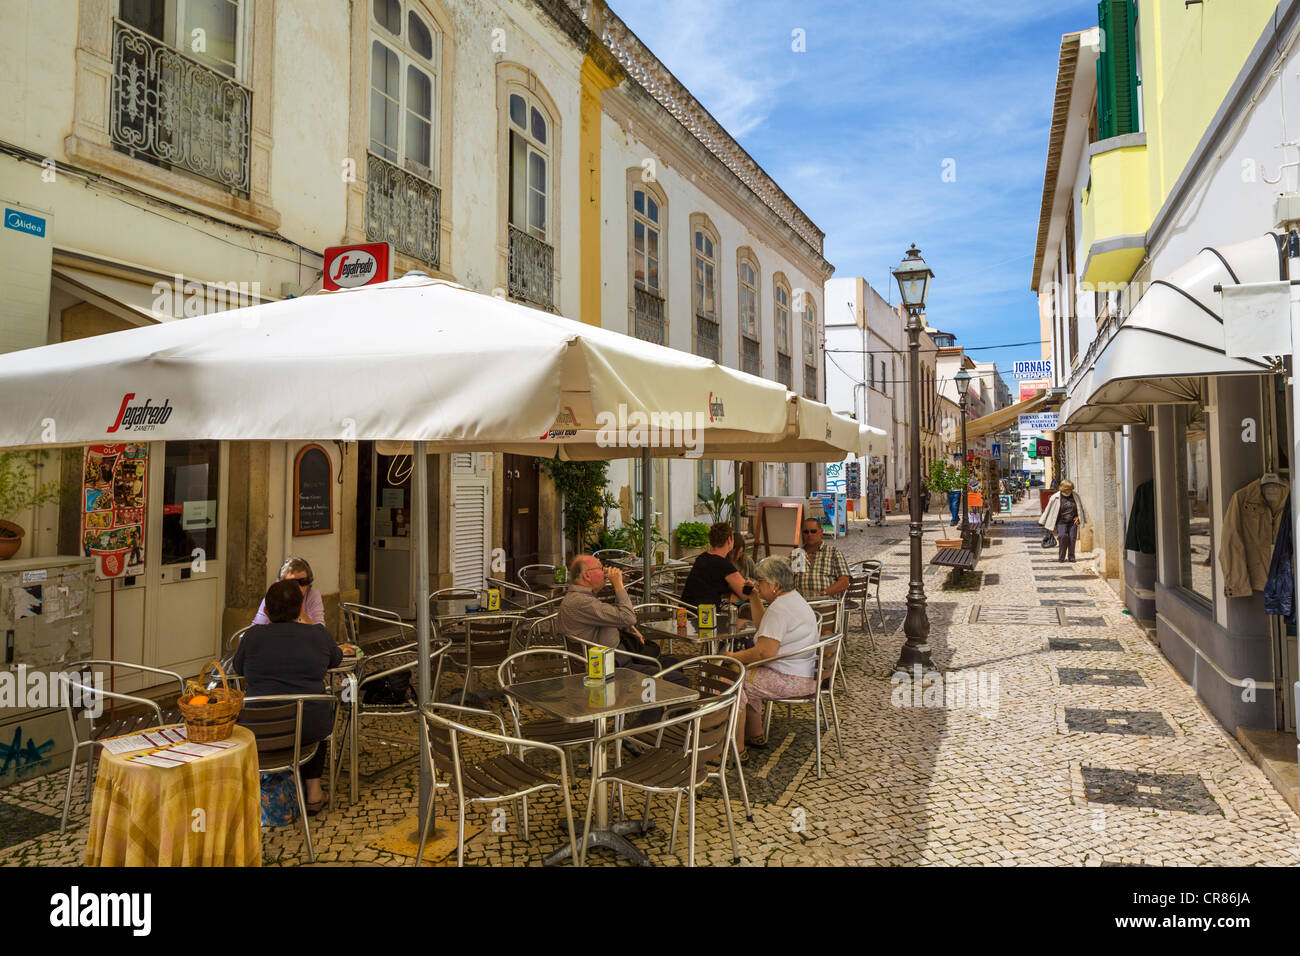 Street cafe and shops in the Old Town, Silves, Algarve, Portugal Stock Photo